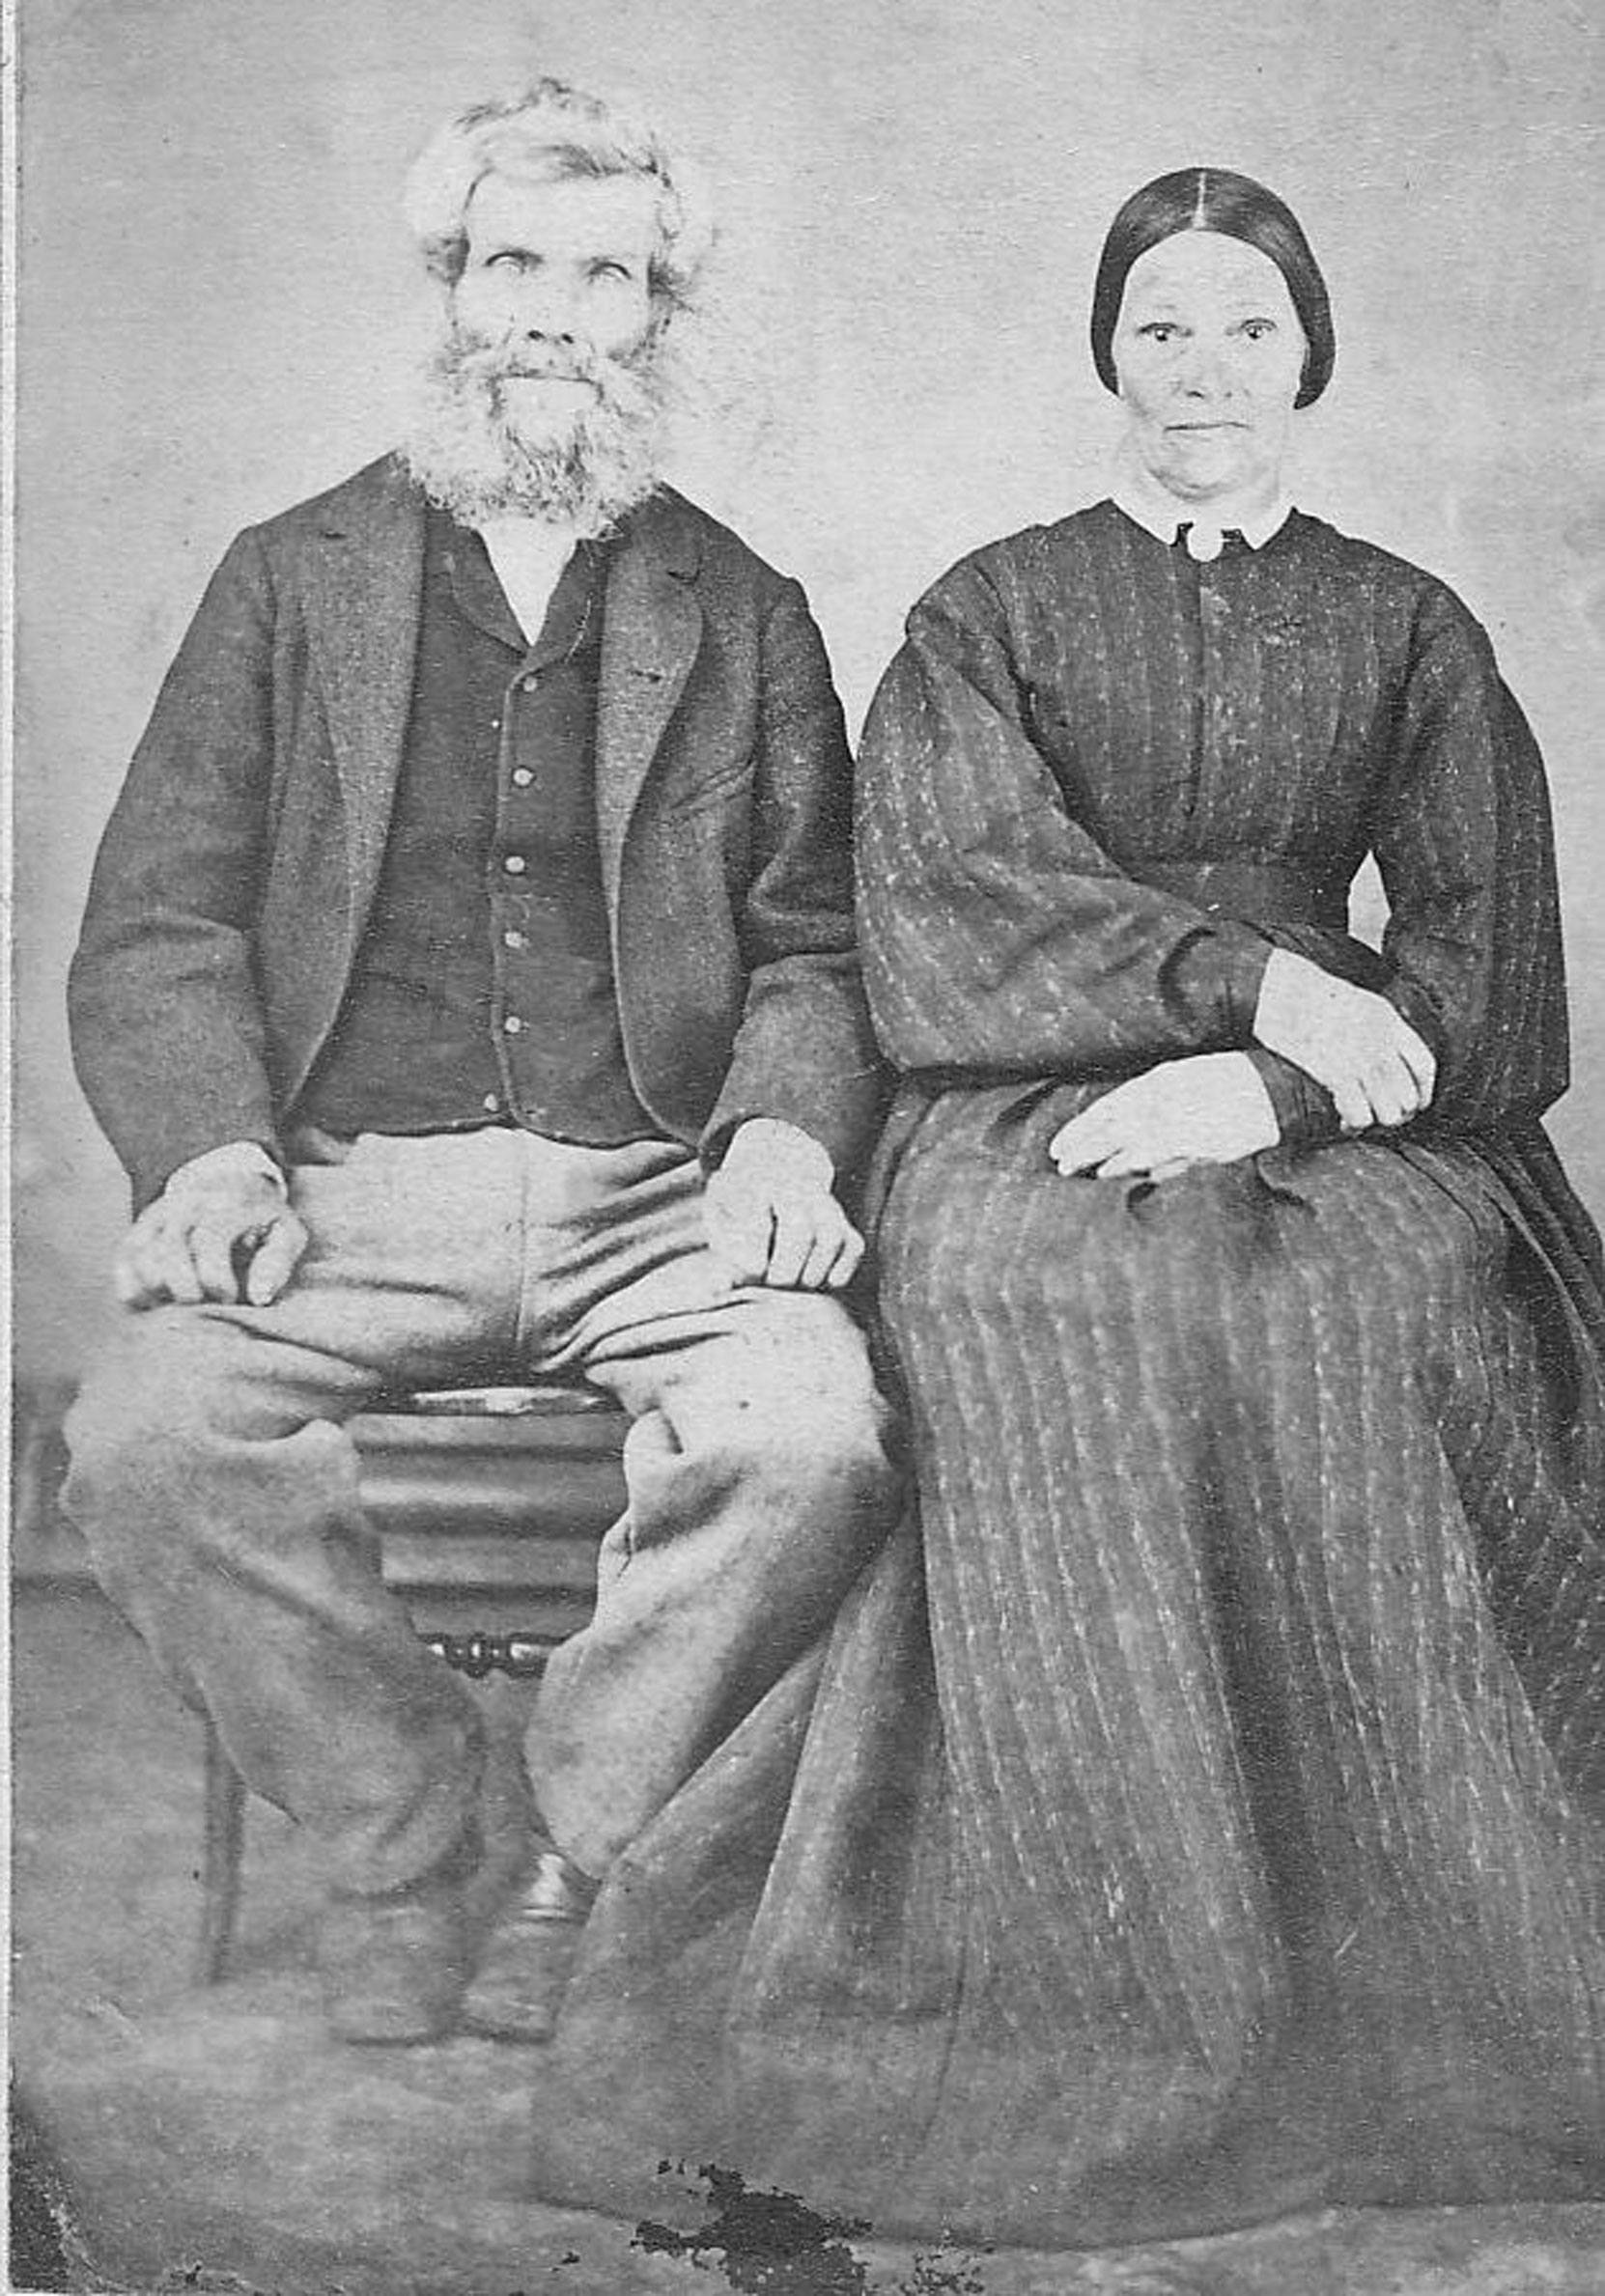 Archibald Renfrew Kier and Mary Jane Kier (photo: Larry Kier - family collection. Used with permission)